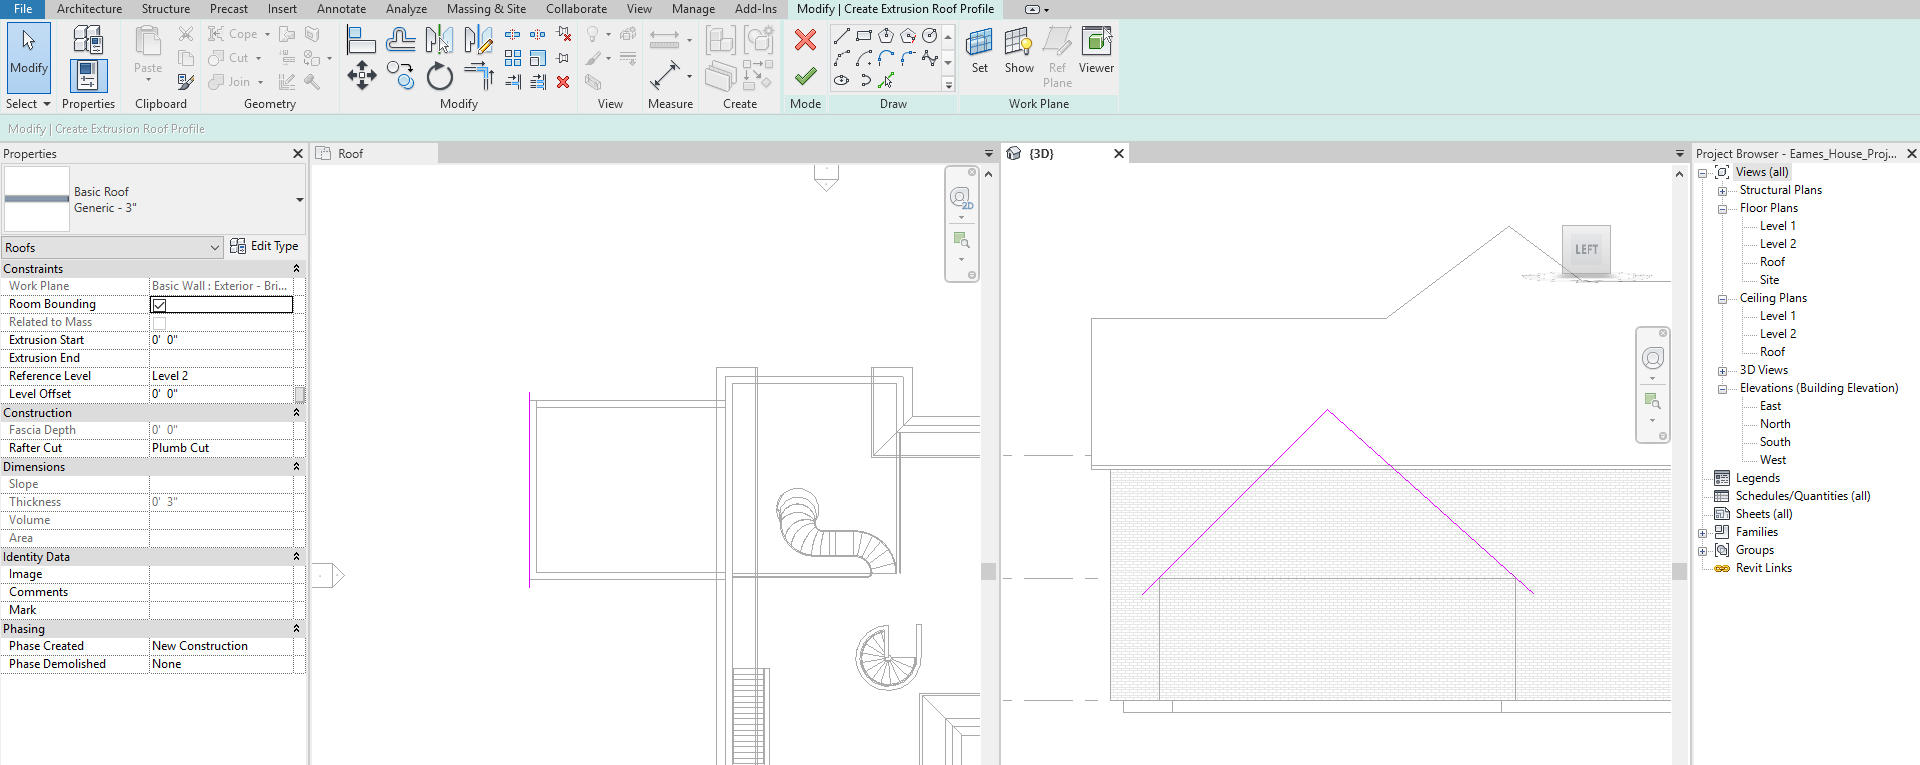 It shows the sketch for side of the hip roof.